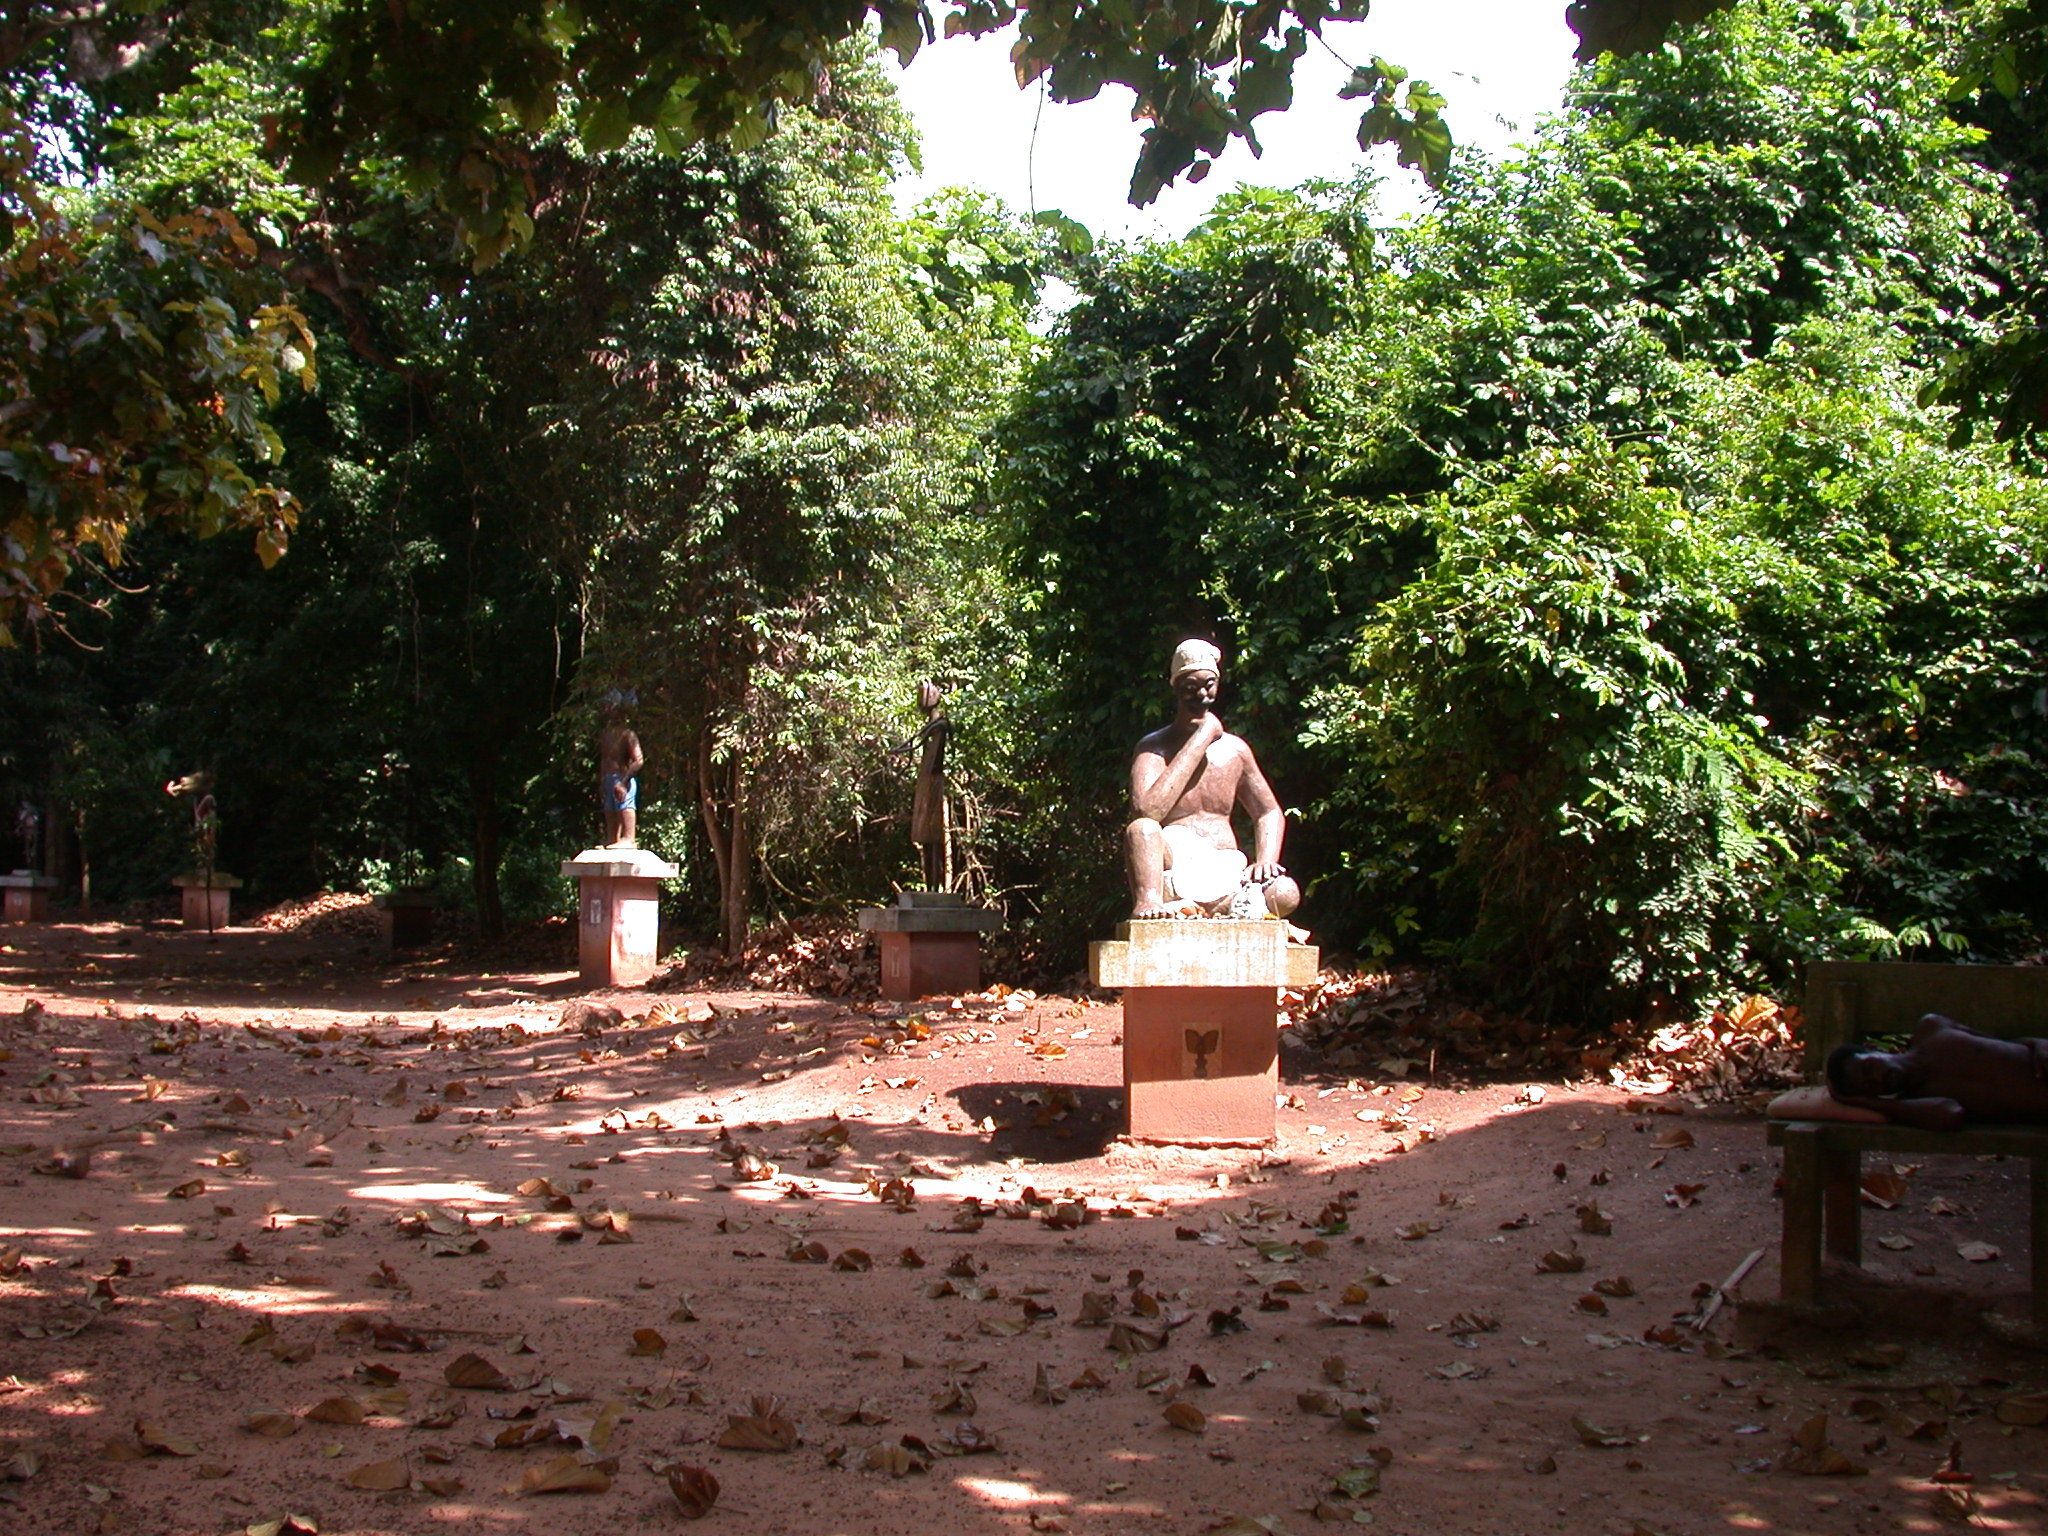 Bokonon Fa Diviner and Other Sculptures, Kpasse Sacred Forest, Ouidah, Benin